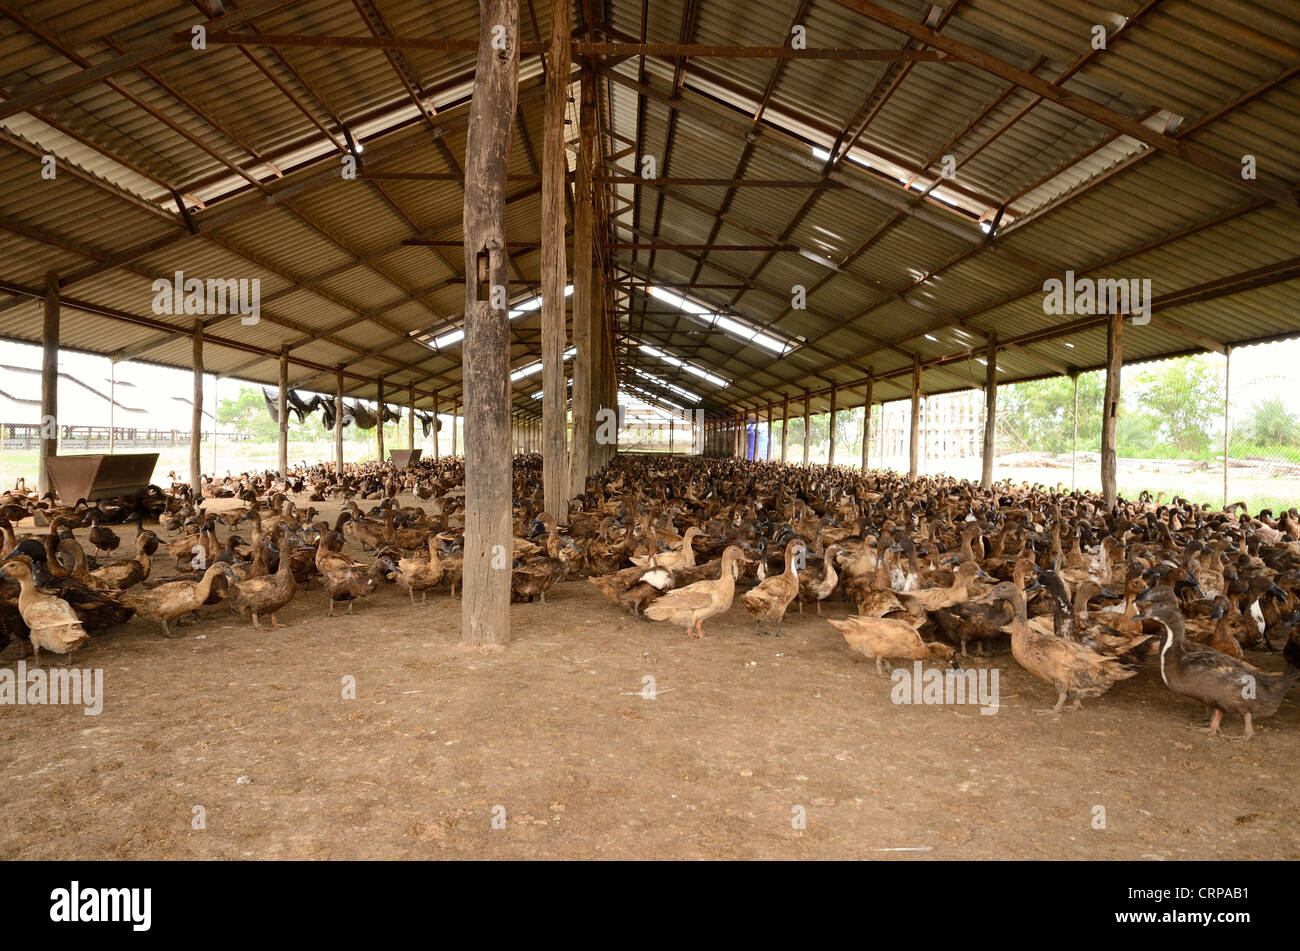 Thai Style Commercial Layer Duck Farm At Middle Of Thailand